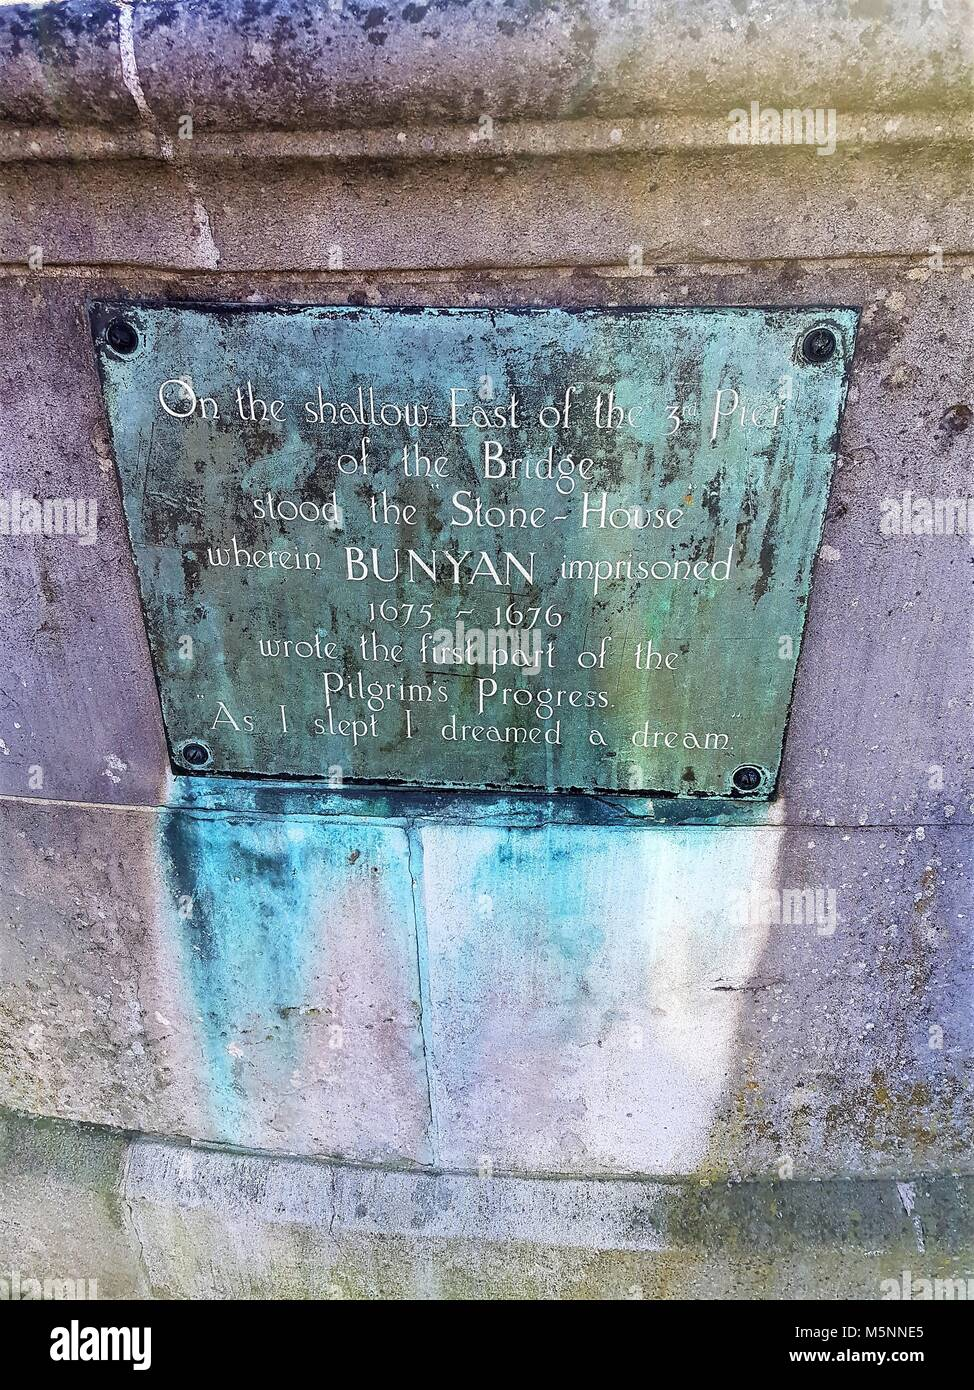 Plaque on bridge of the River Great Ouse, Bedford, UK - Bunyan imprisoned and wrote first part of 'Pilgrim's - Stock Image